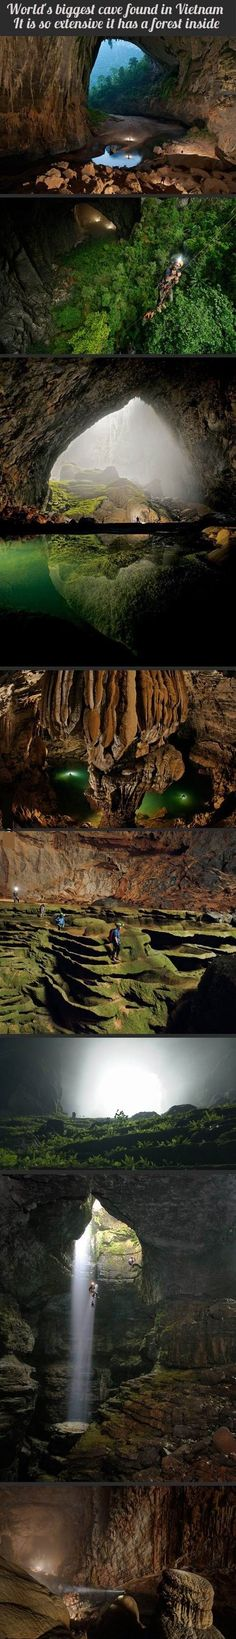 Son Doong cave is World's largest cave. - found by a local man named Ho Khanh in 1991 - Vietnam